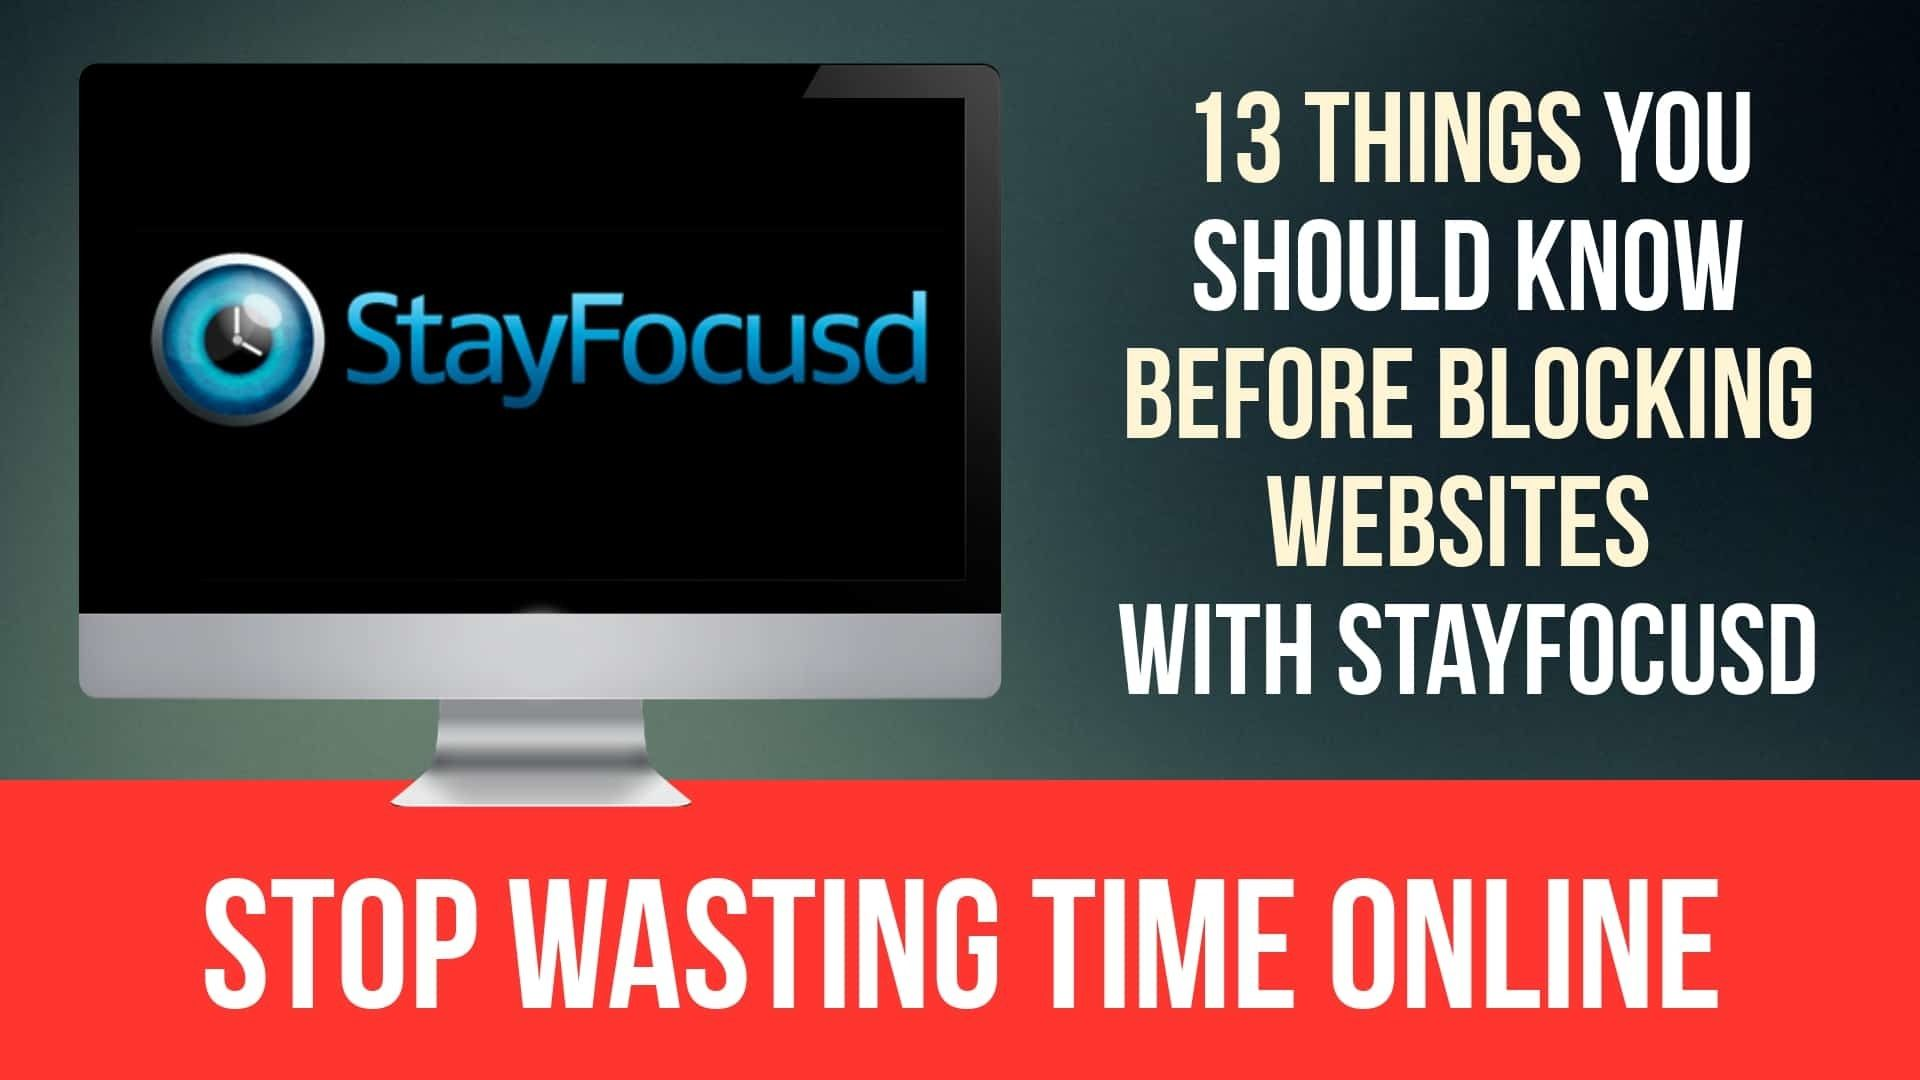 StayFocusd Website Blocker